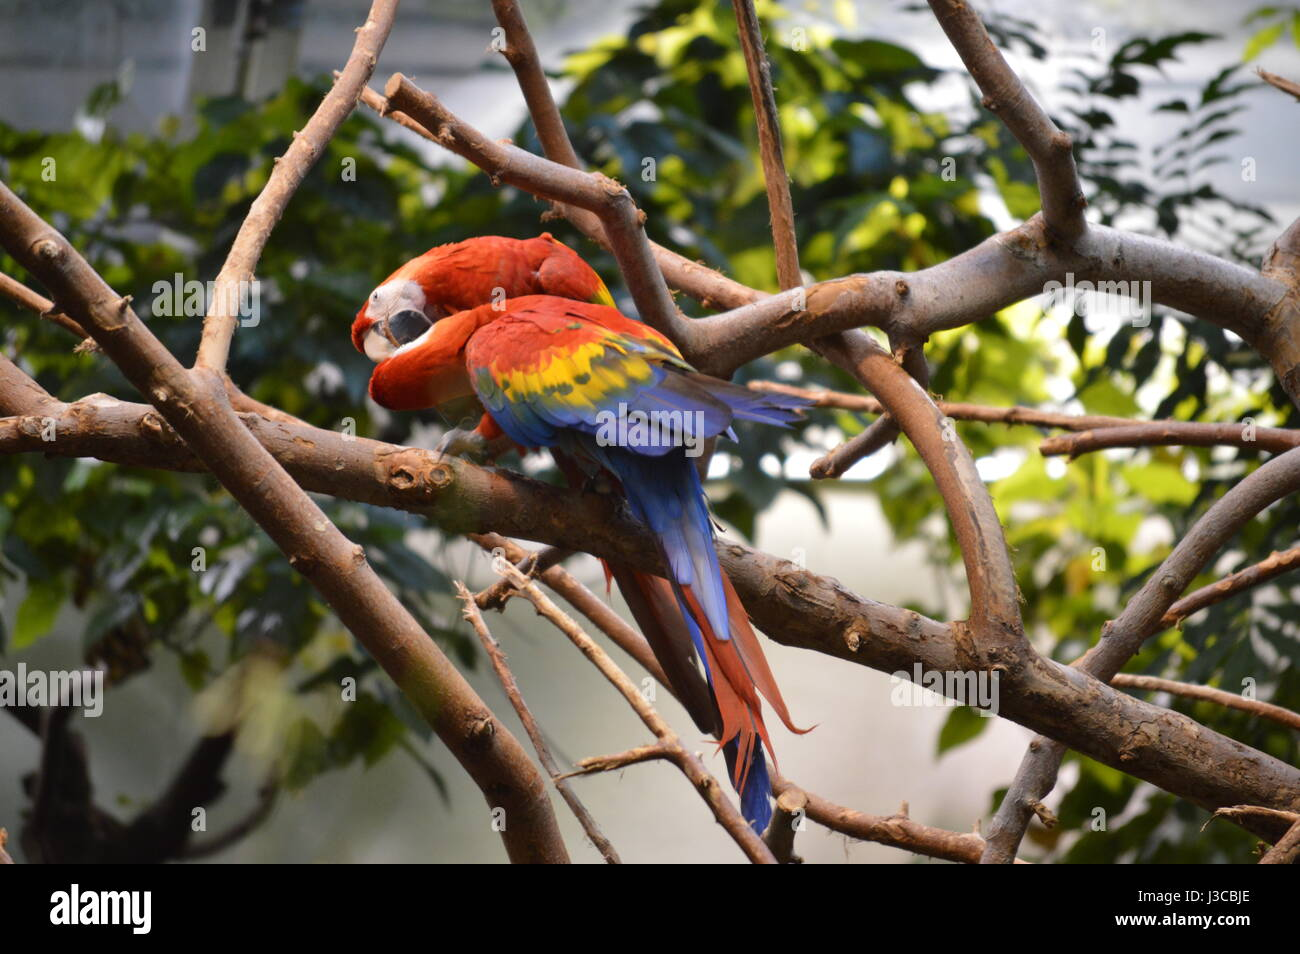 Playful Parrots Bio Dome , Montreal Canada - Stock Image